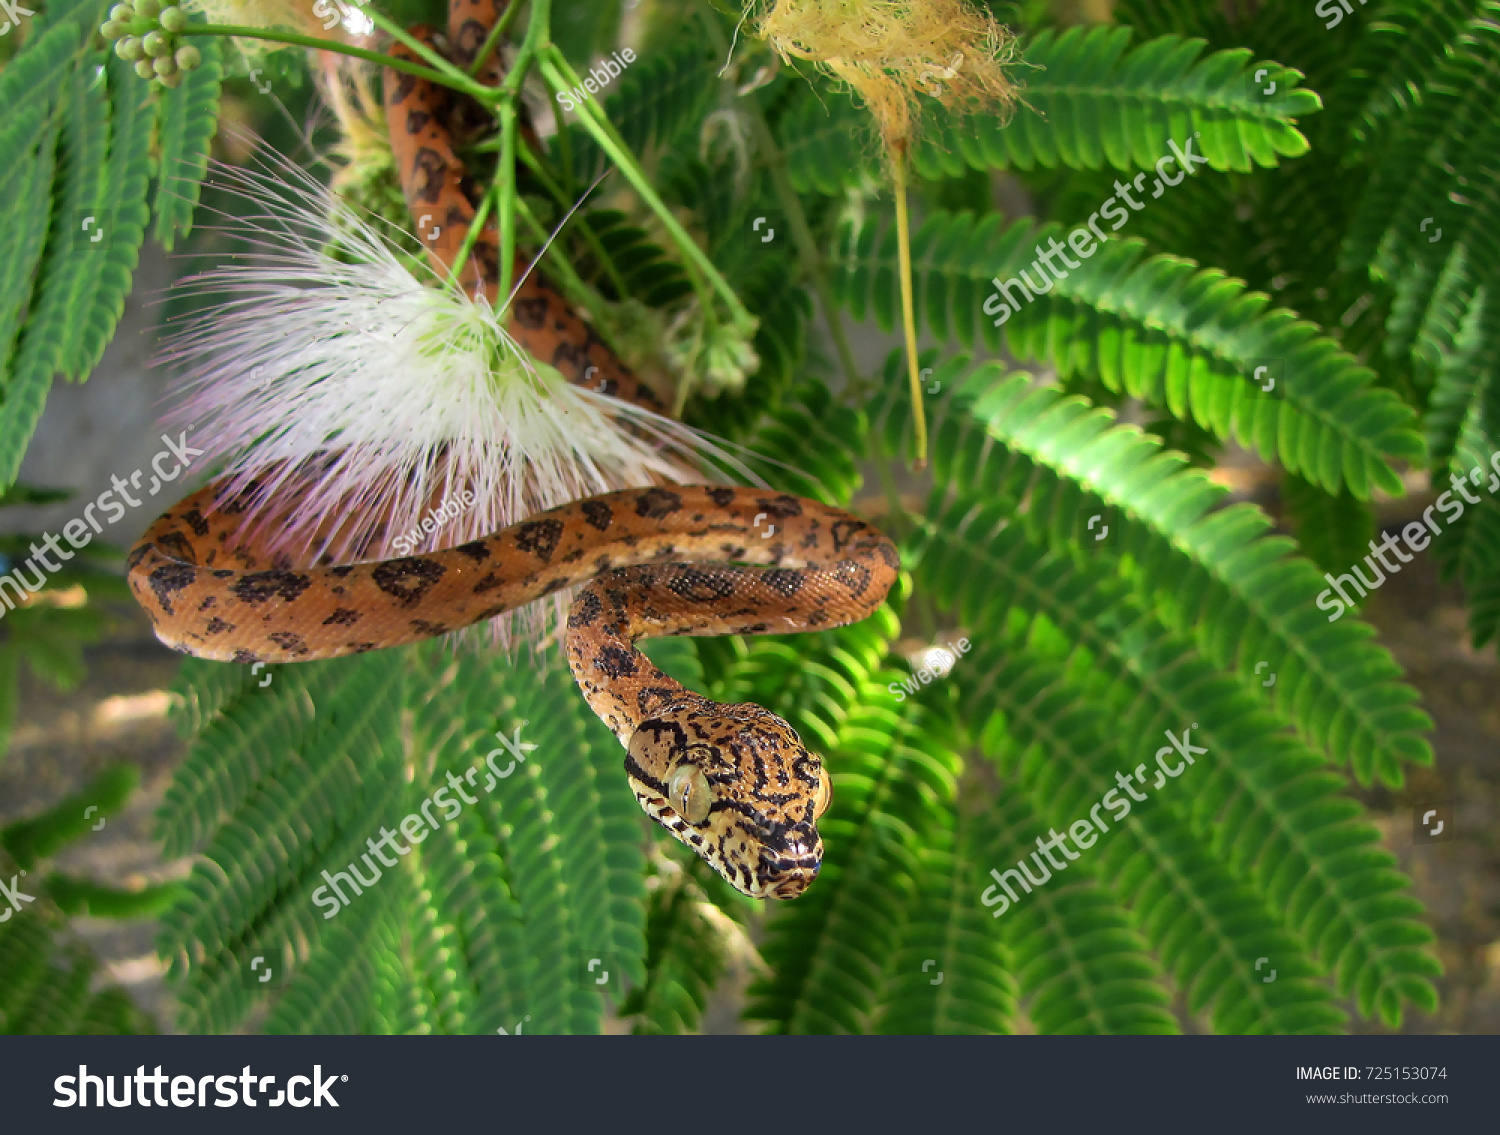 Orange Black Amazon Tree Boa Tree Stock Photo 725153074 - Shutterstock